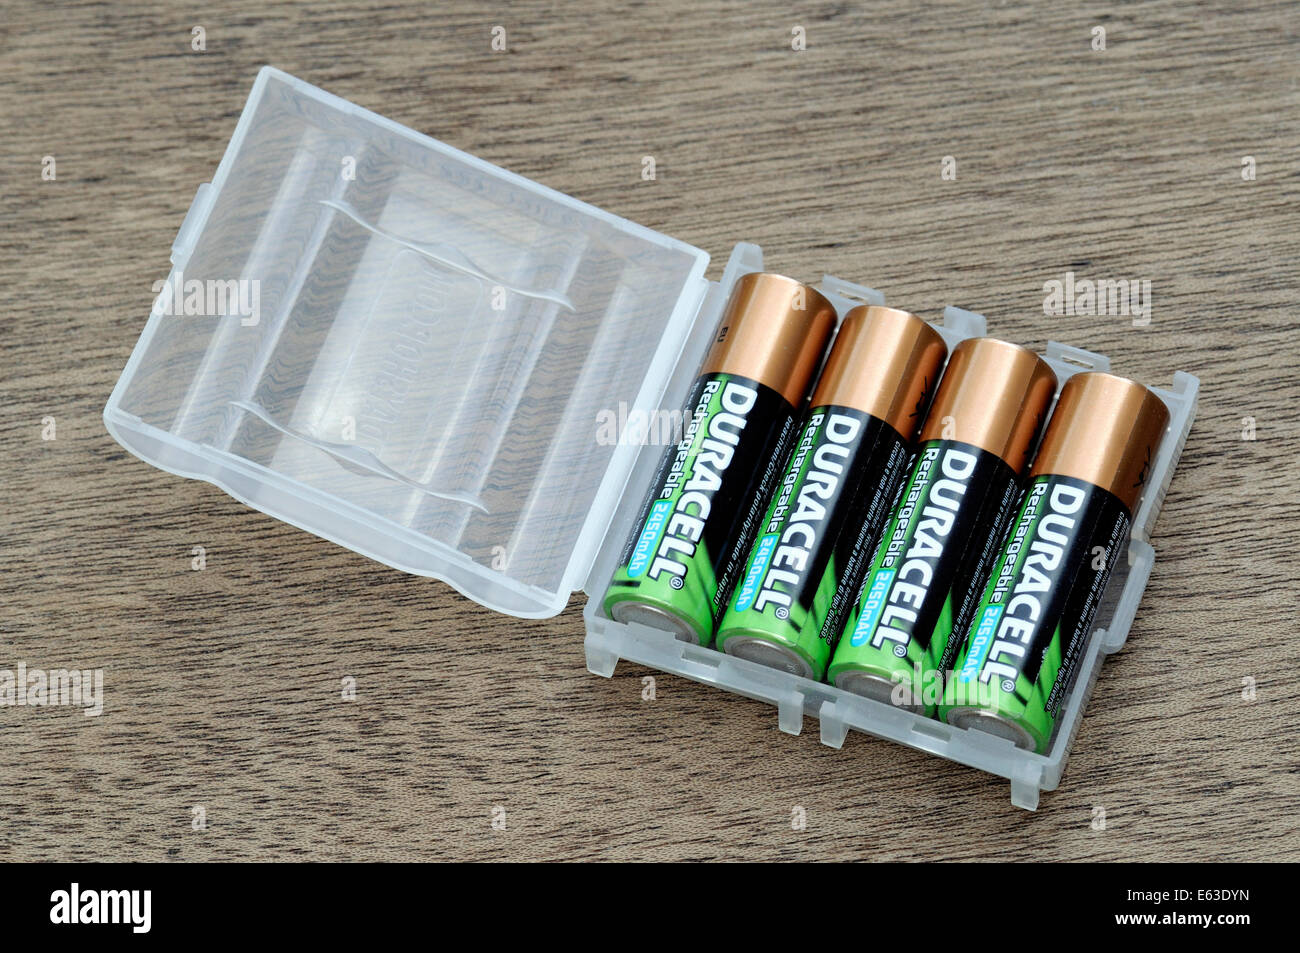 Four rechargeable batteries stored in plastic container. - Stock Image